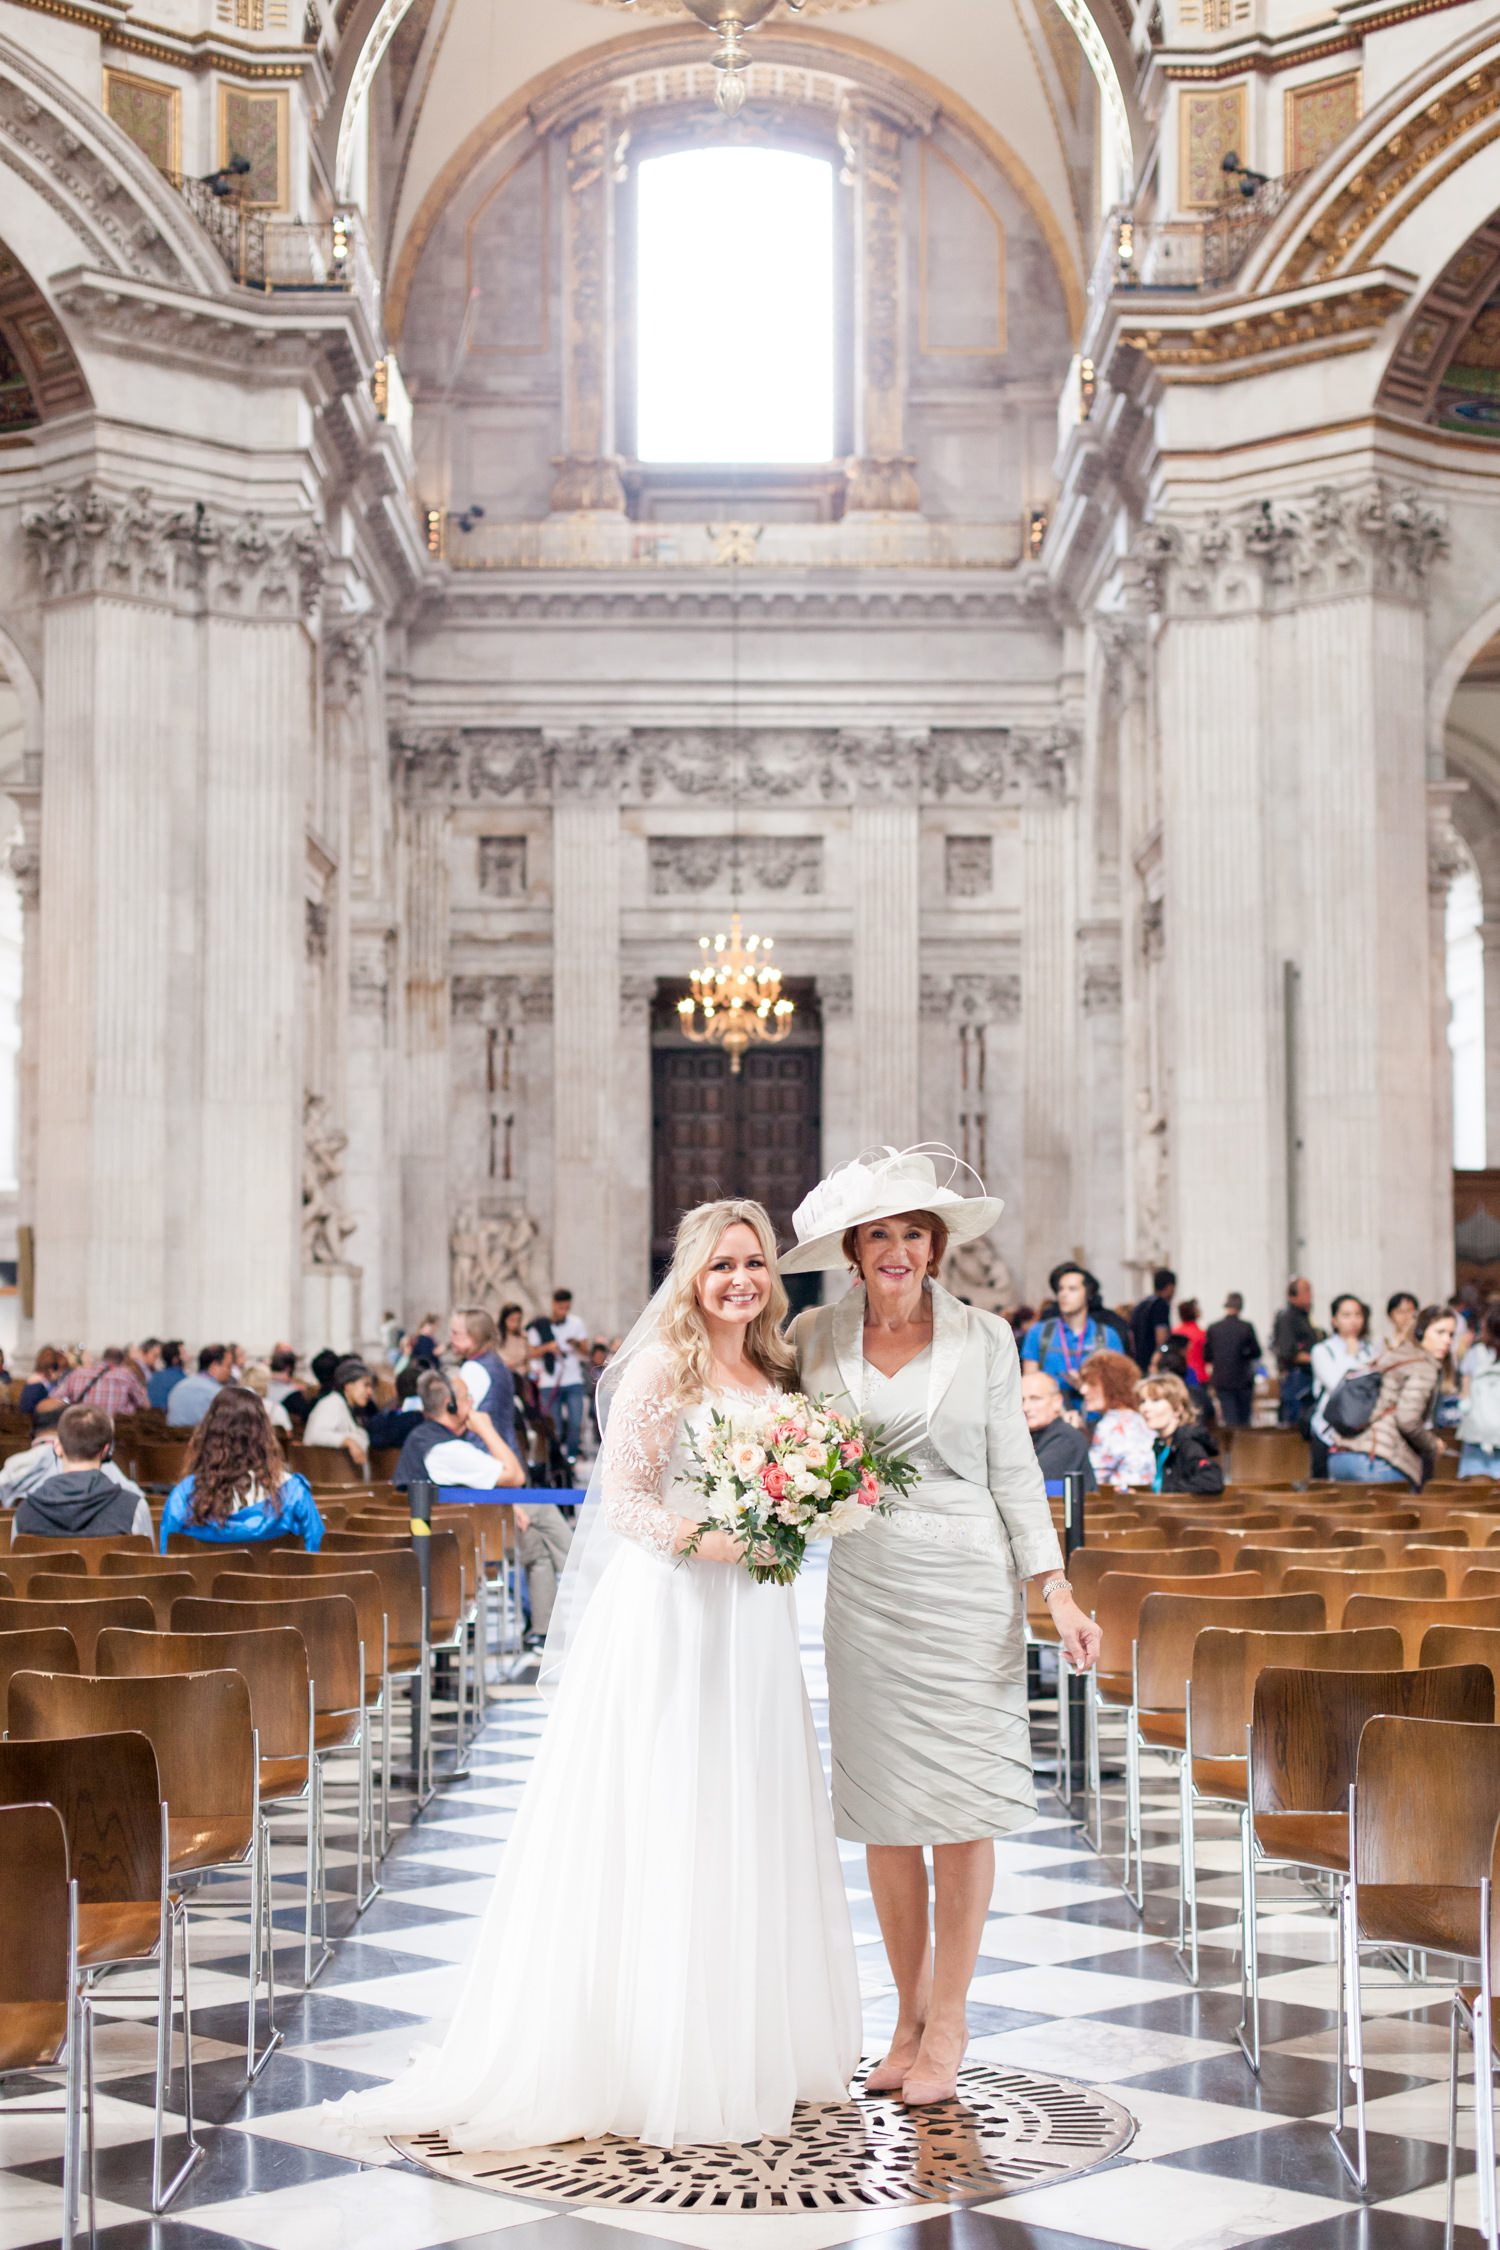 Charlotte & Adam's St. Paul's Cathedral wedding - a bride and her Mother inside St. Paul's cathedral